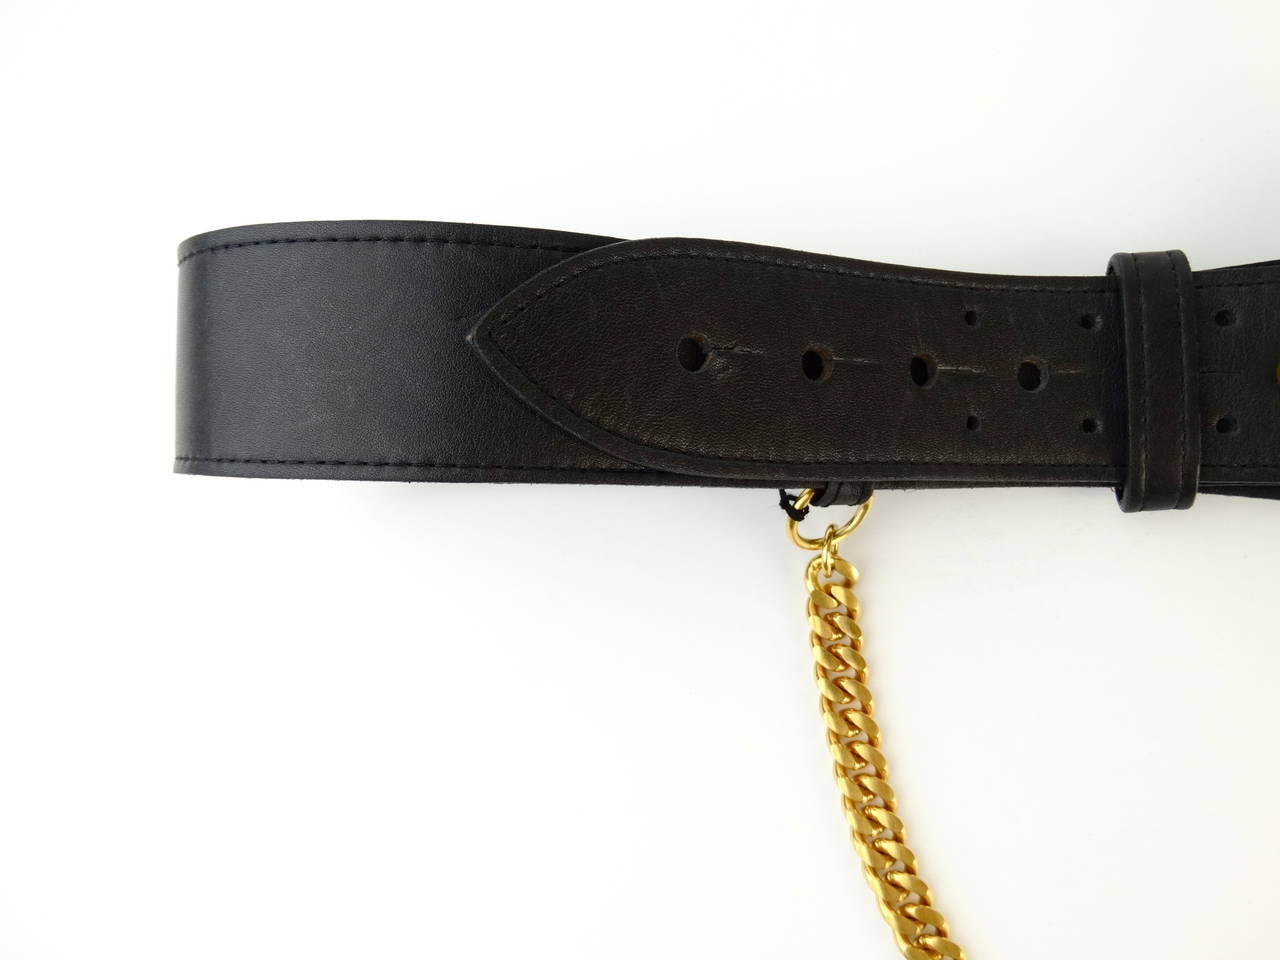 1996 Black Leather Chanel Belt with Gold Chain 8